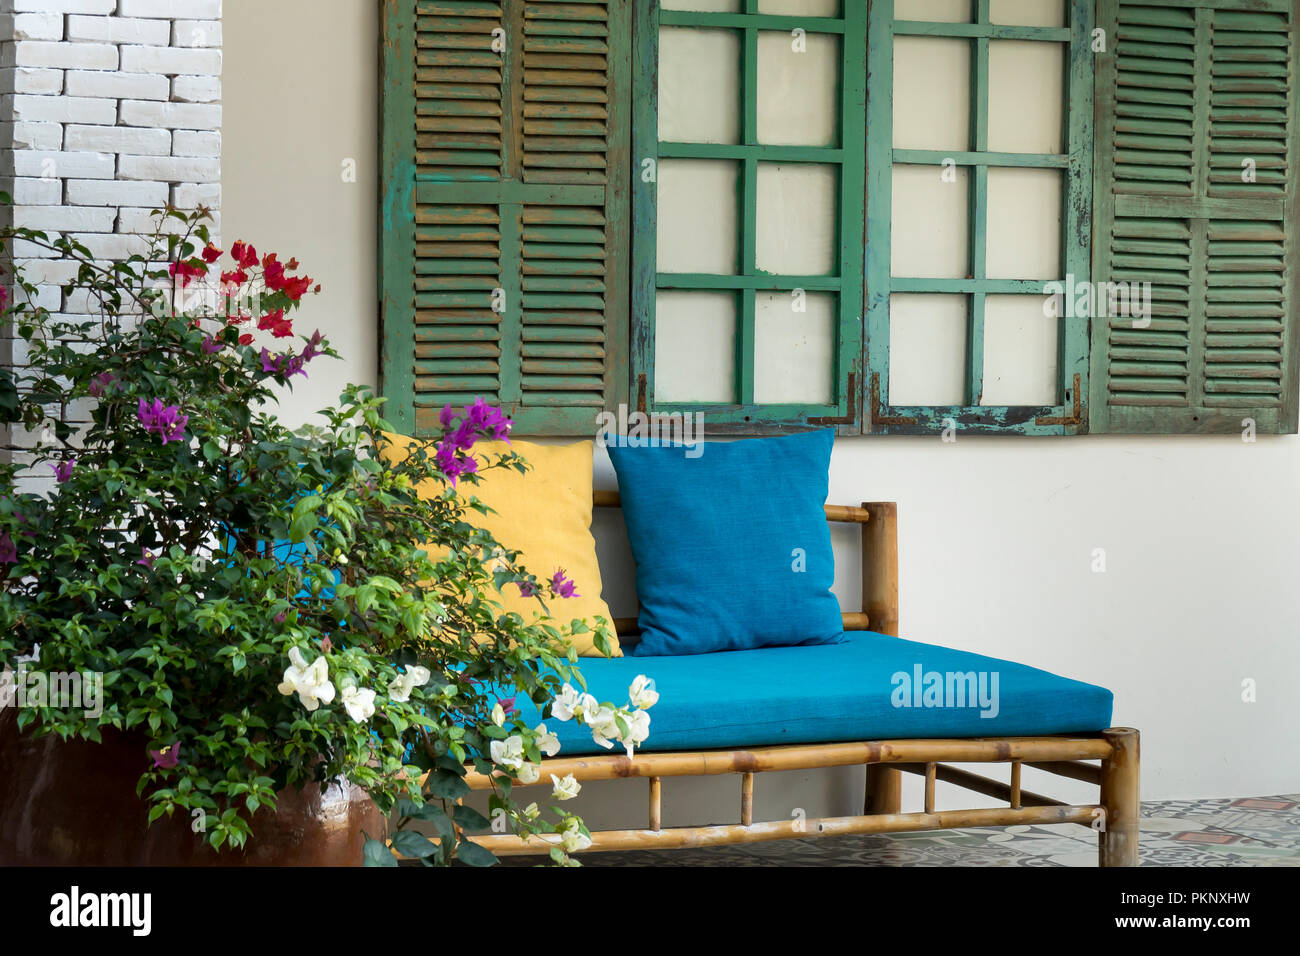 Enjoyable Bamboo Sofa Set Under The Wood Window Blue In The Tropical Bralicious Painted Fabric Chair Ideas Braliciousco